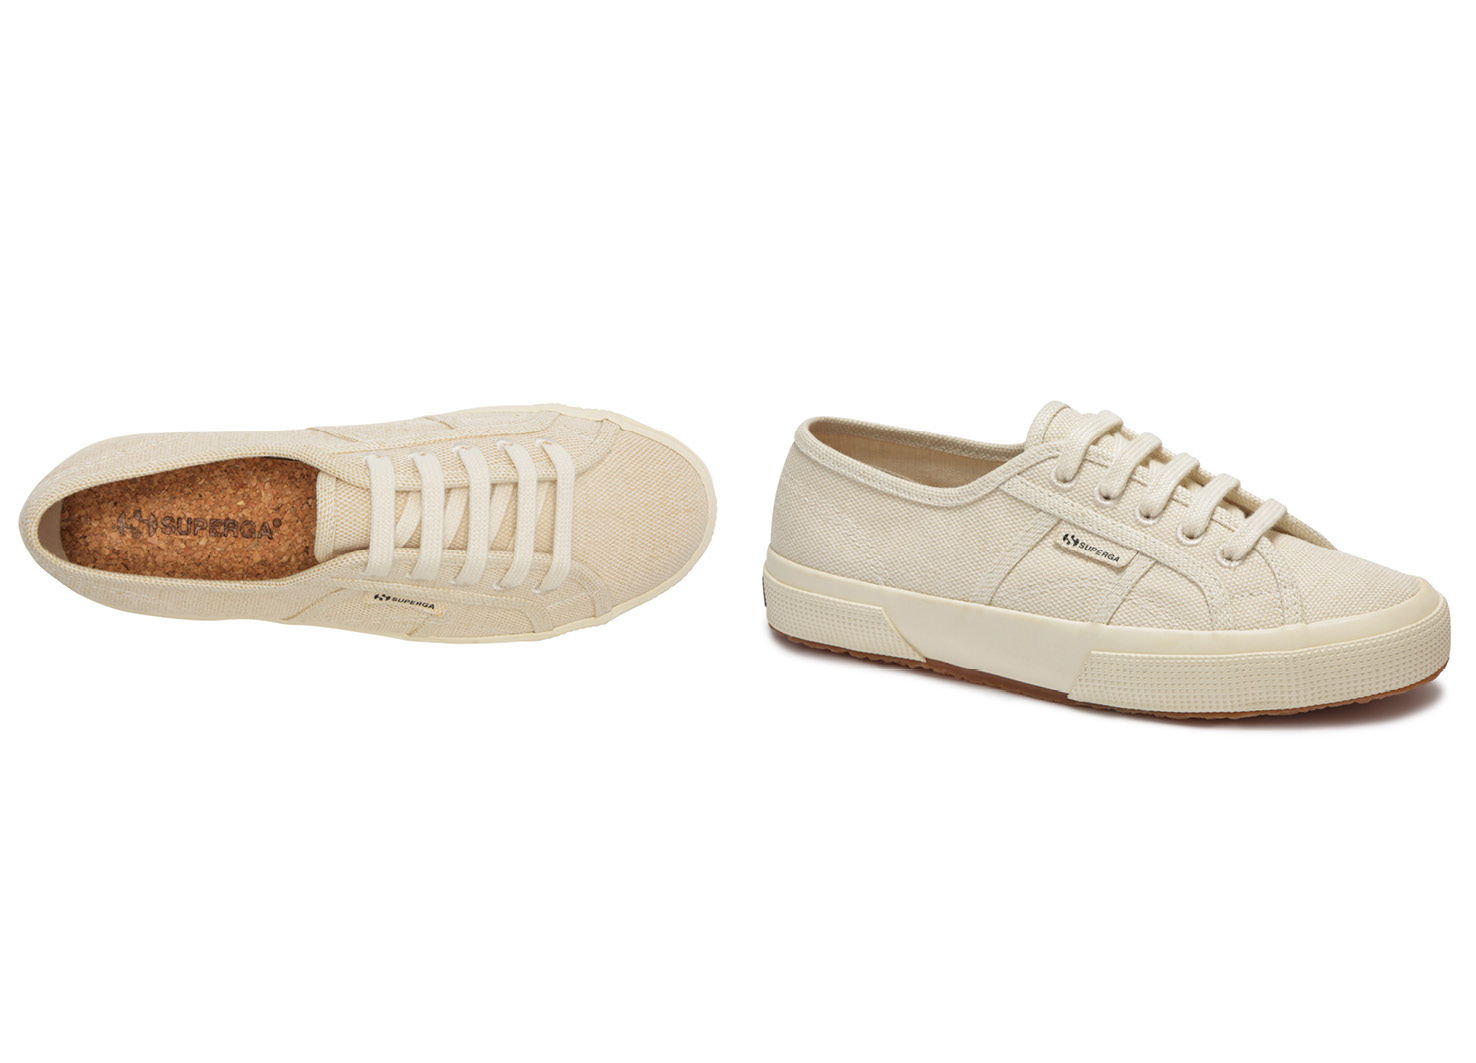 Ethical and sustainable sneakers – Superga